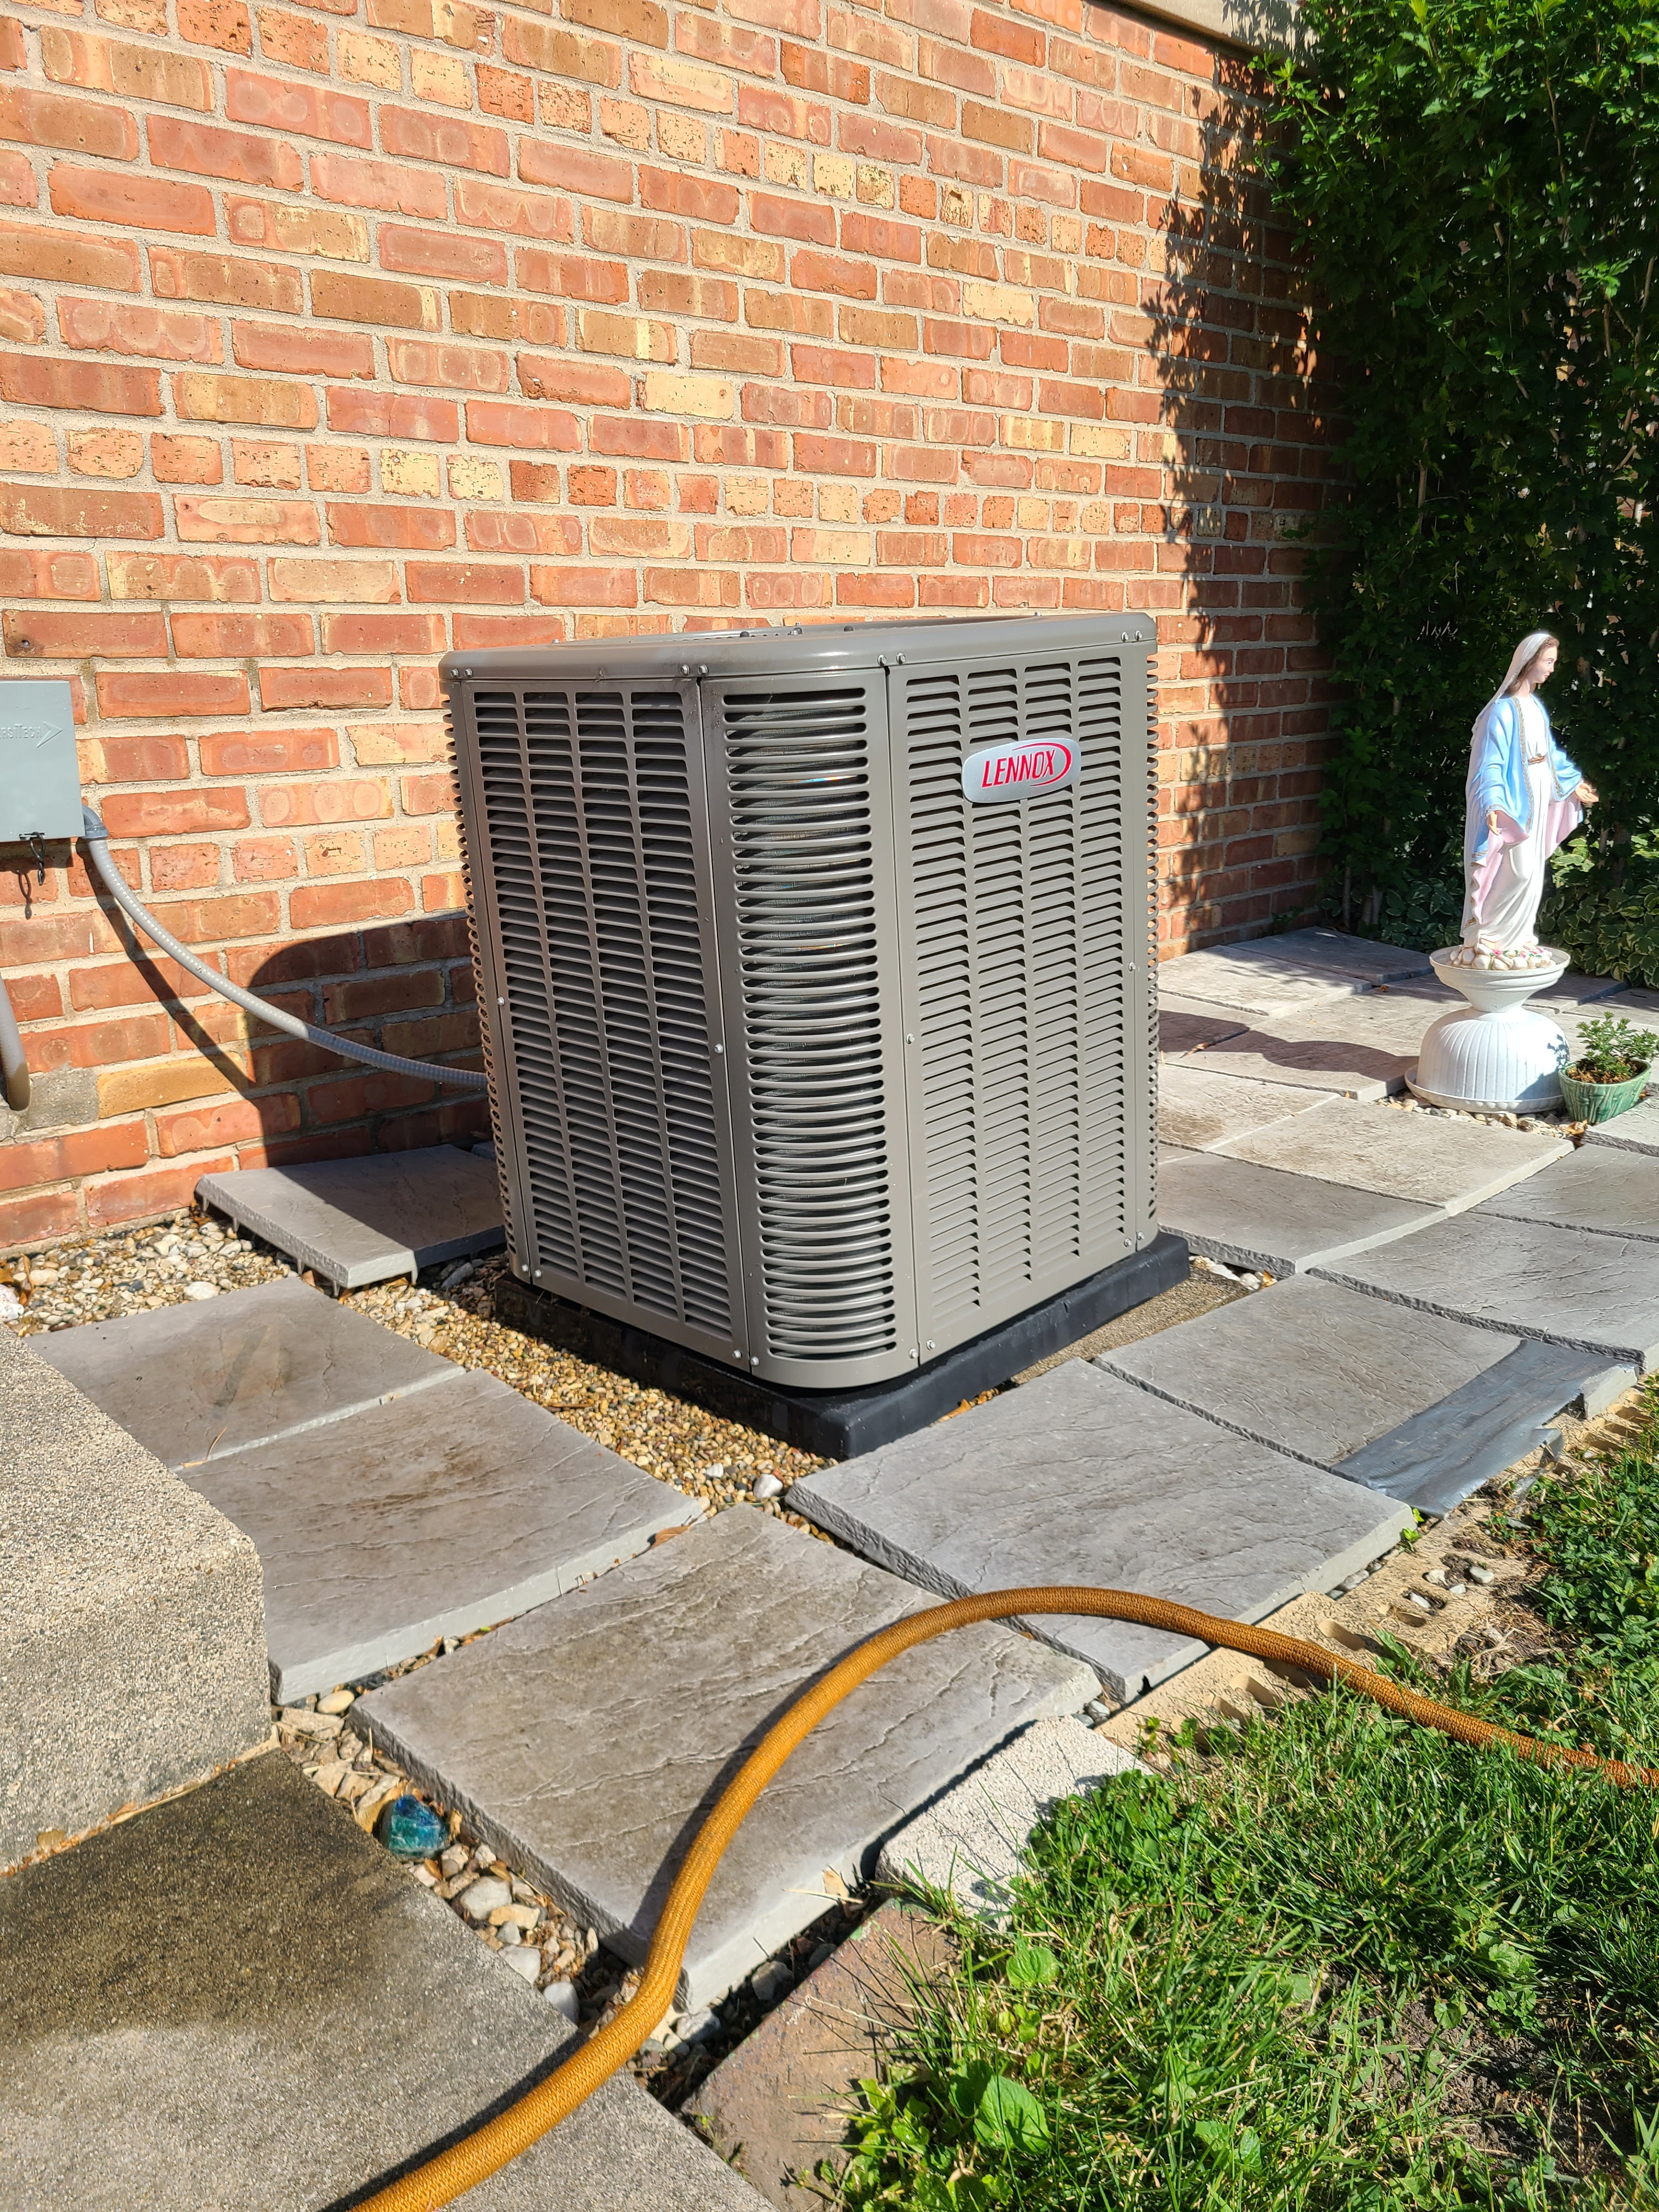 Lennox r410a system cleaned and repairs made...ready for spring/ summer operation